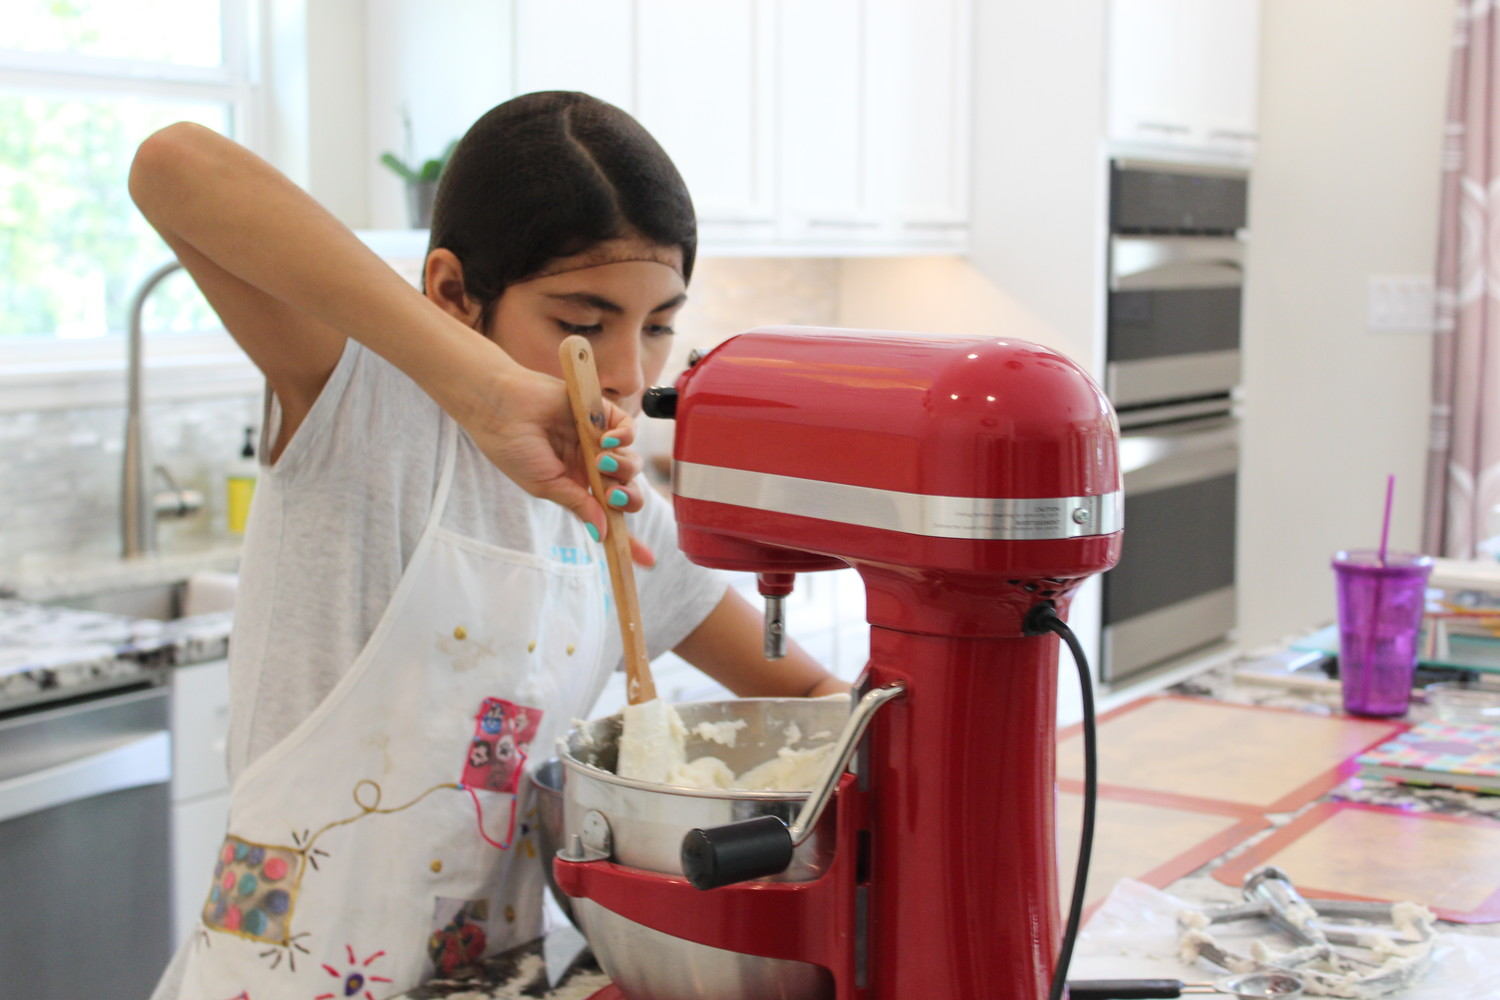 Ava Avila, 12, mixes frosting for cupcakes at her Round Rock home.